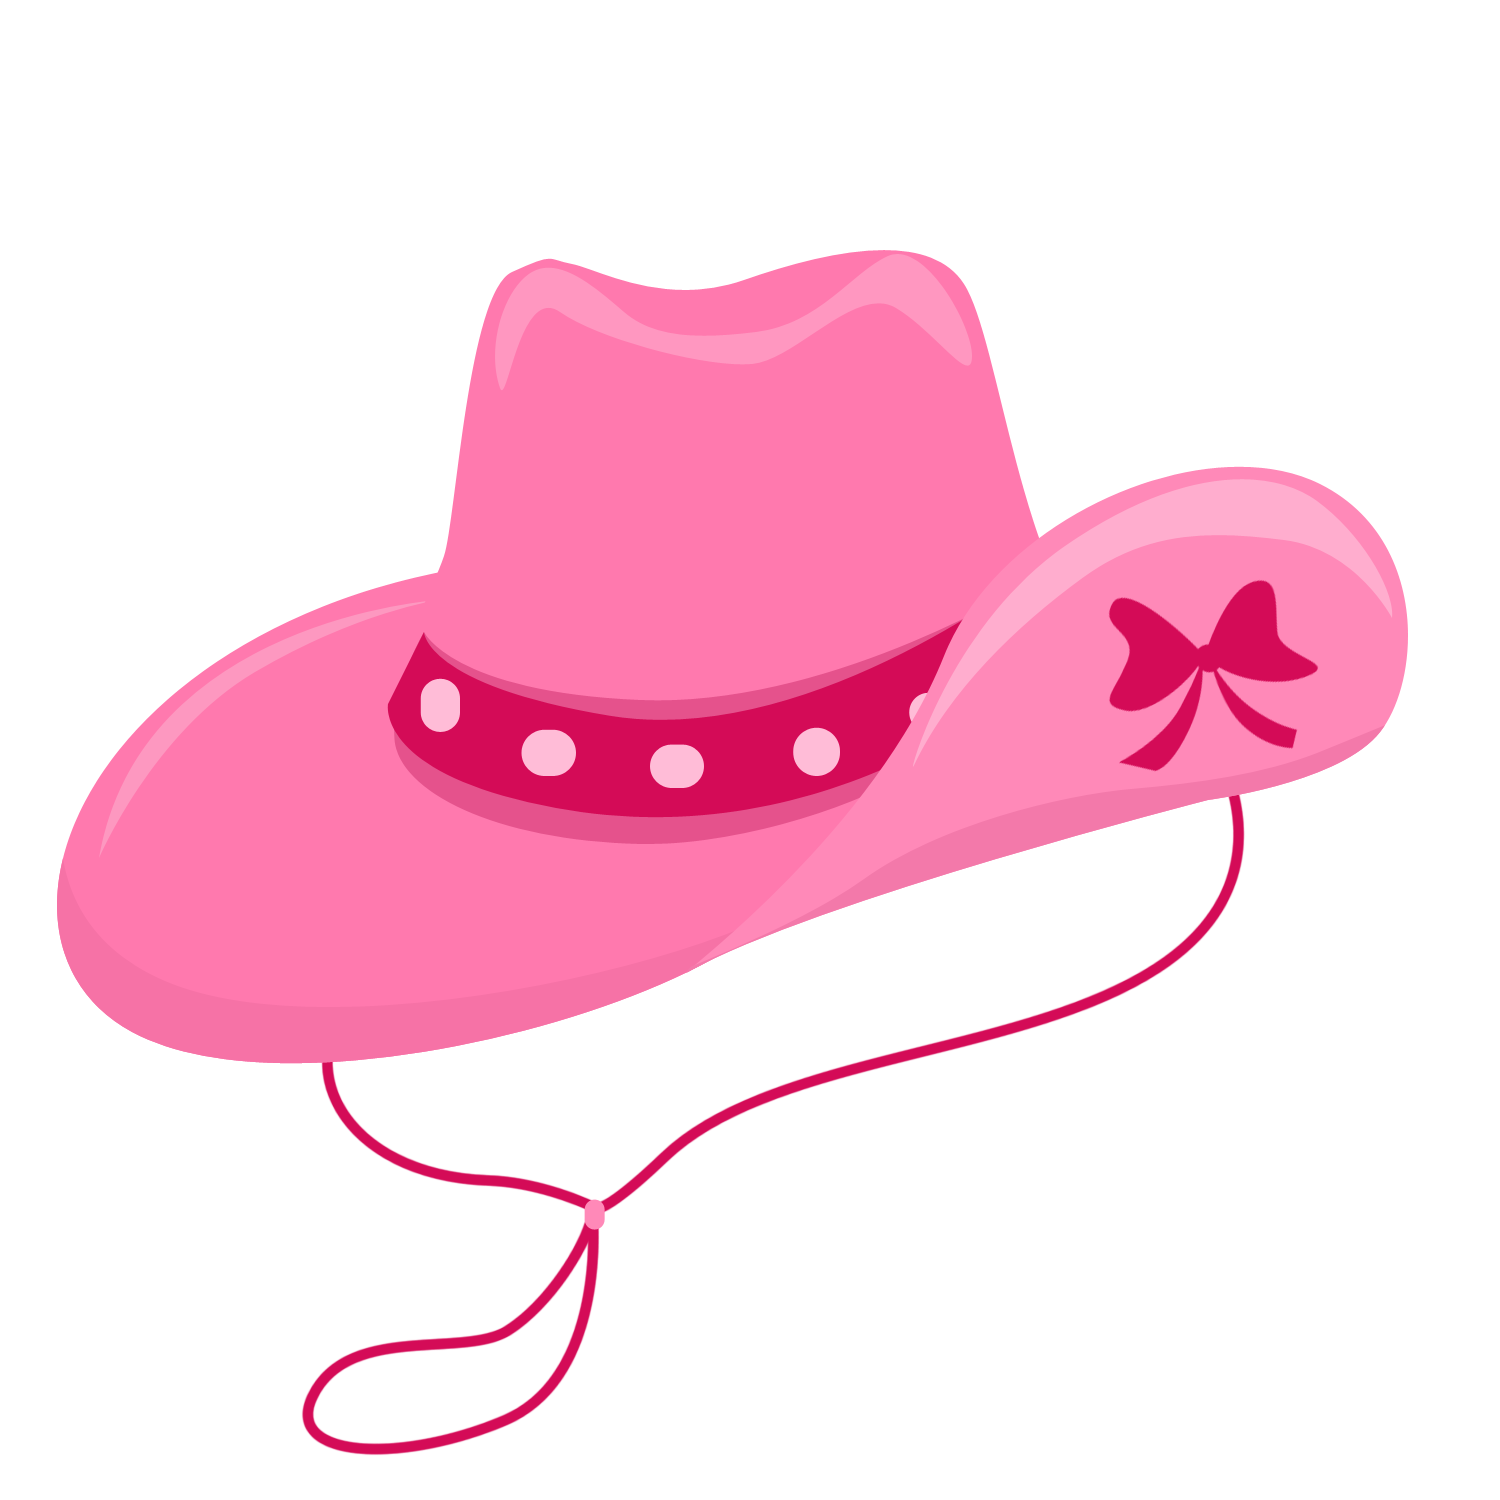 Cowgirl clipart pink. Photo by daniellemoraesfalcao minus